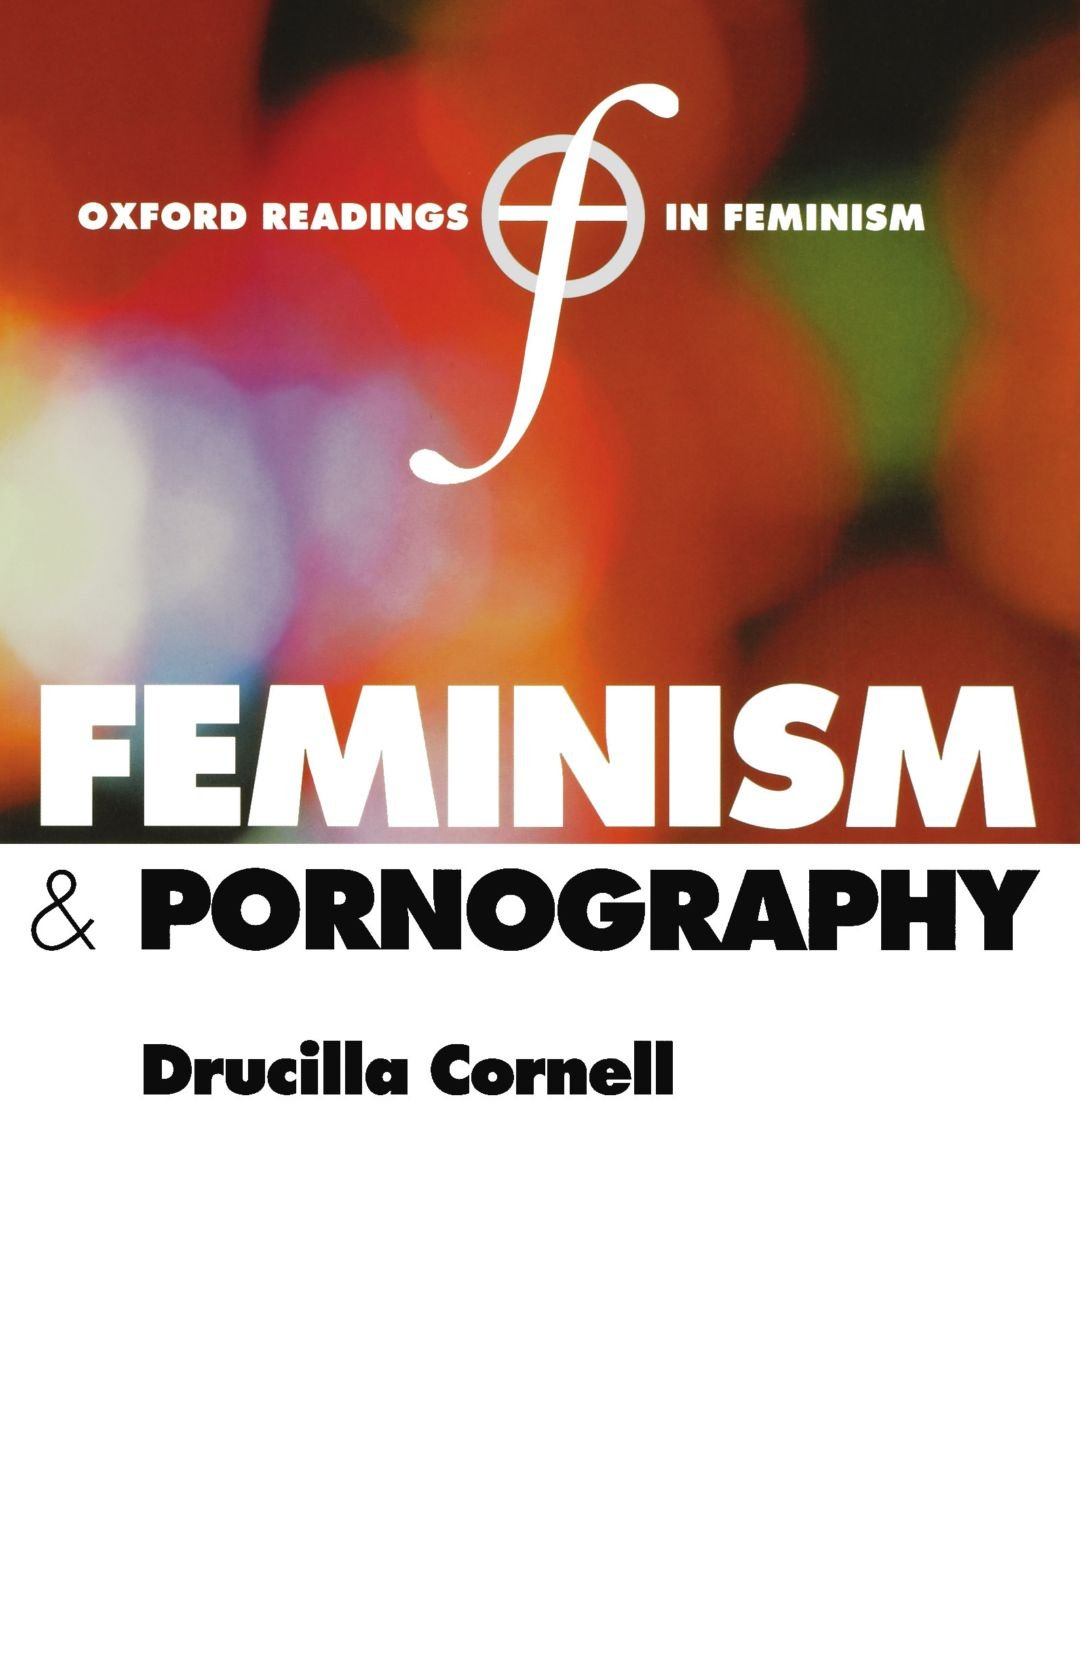 feminism and pornography oxford readings in feminism amazon co feminism and pornography oxford readings in feminism amazon co uk drucill cornell 9780198782506 books